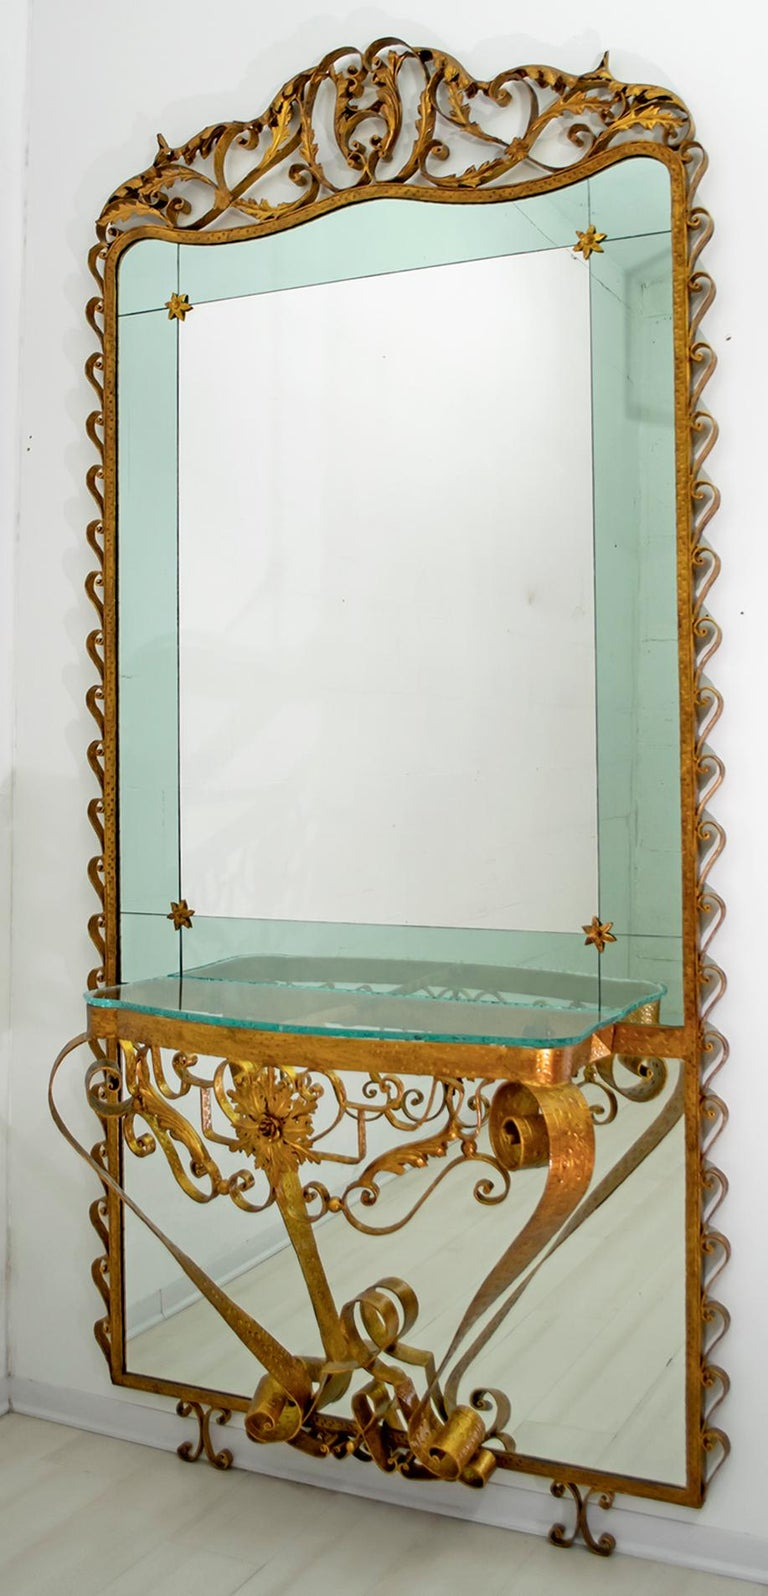 Beautiful, large and majestic entrance mirror with console, sophisticated, elegant, designed by Pier Luigi Colli, Italy, Turin 1950 The frame is in wrought iron, handcrafted, the mirror is in two colors, green and transparent, the console tabletop,